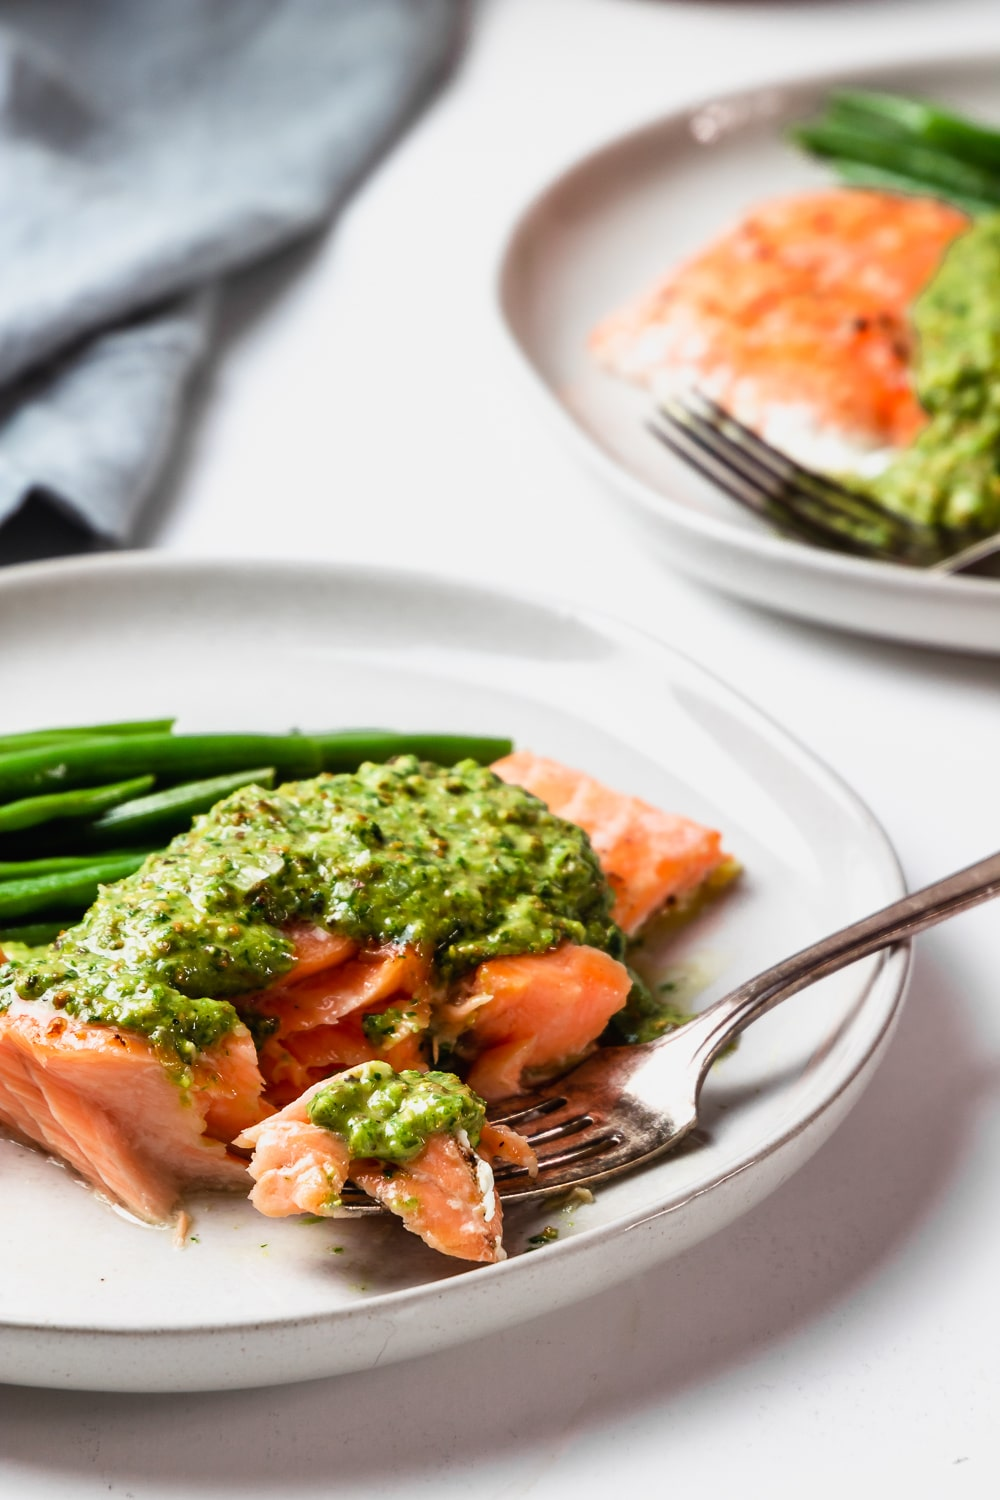 two plates with slow roasted salmon fillets with pistachio pesto and green beans